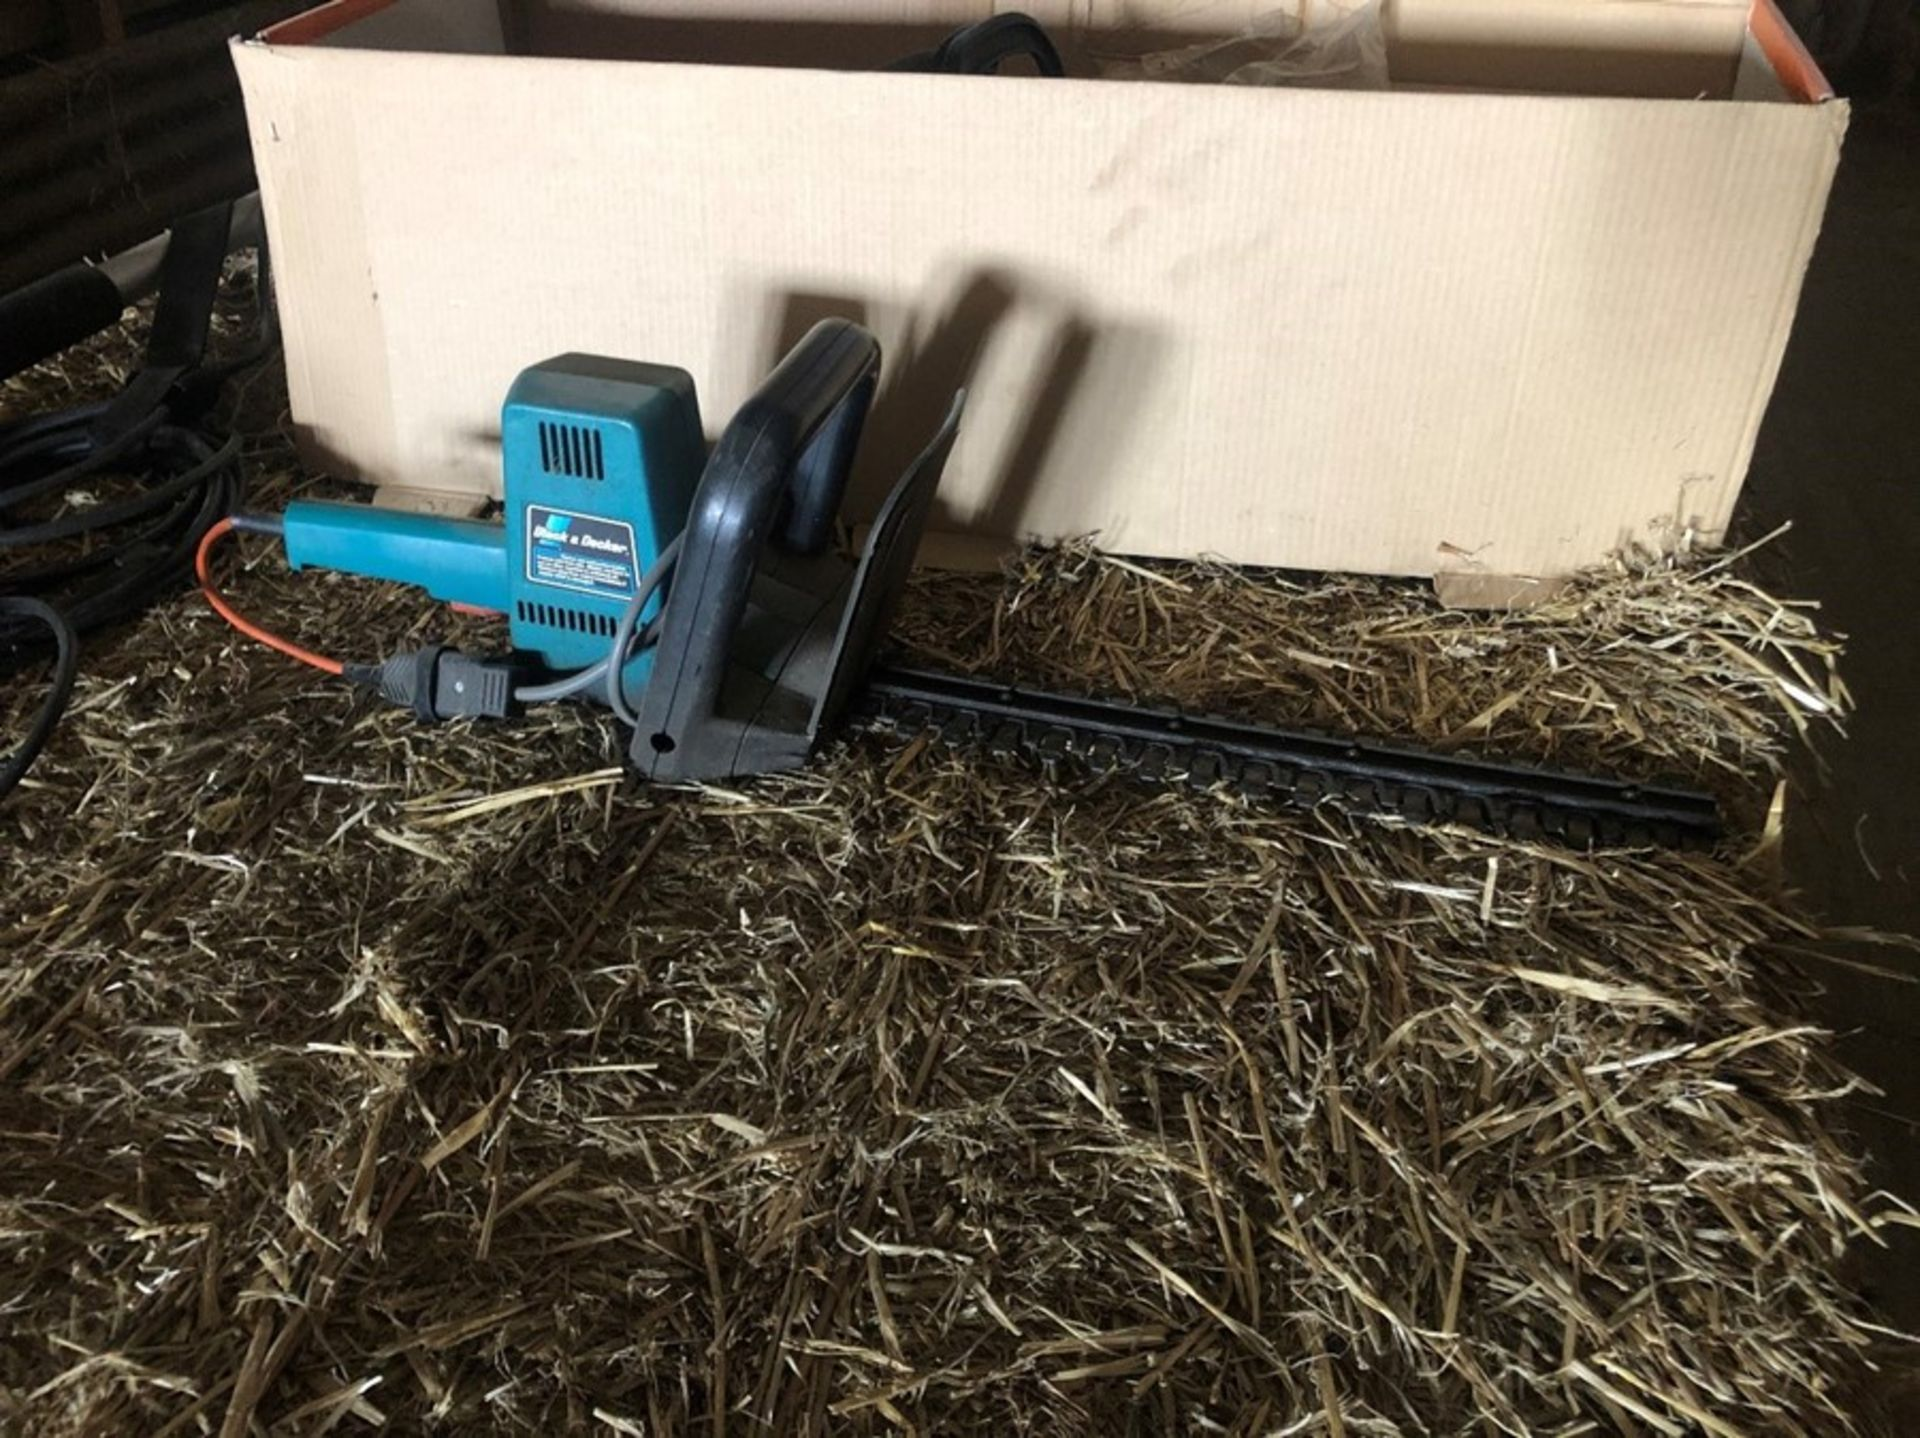 B & D electric hedge cutter - Passed PAT test